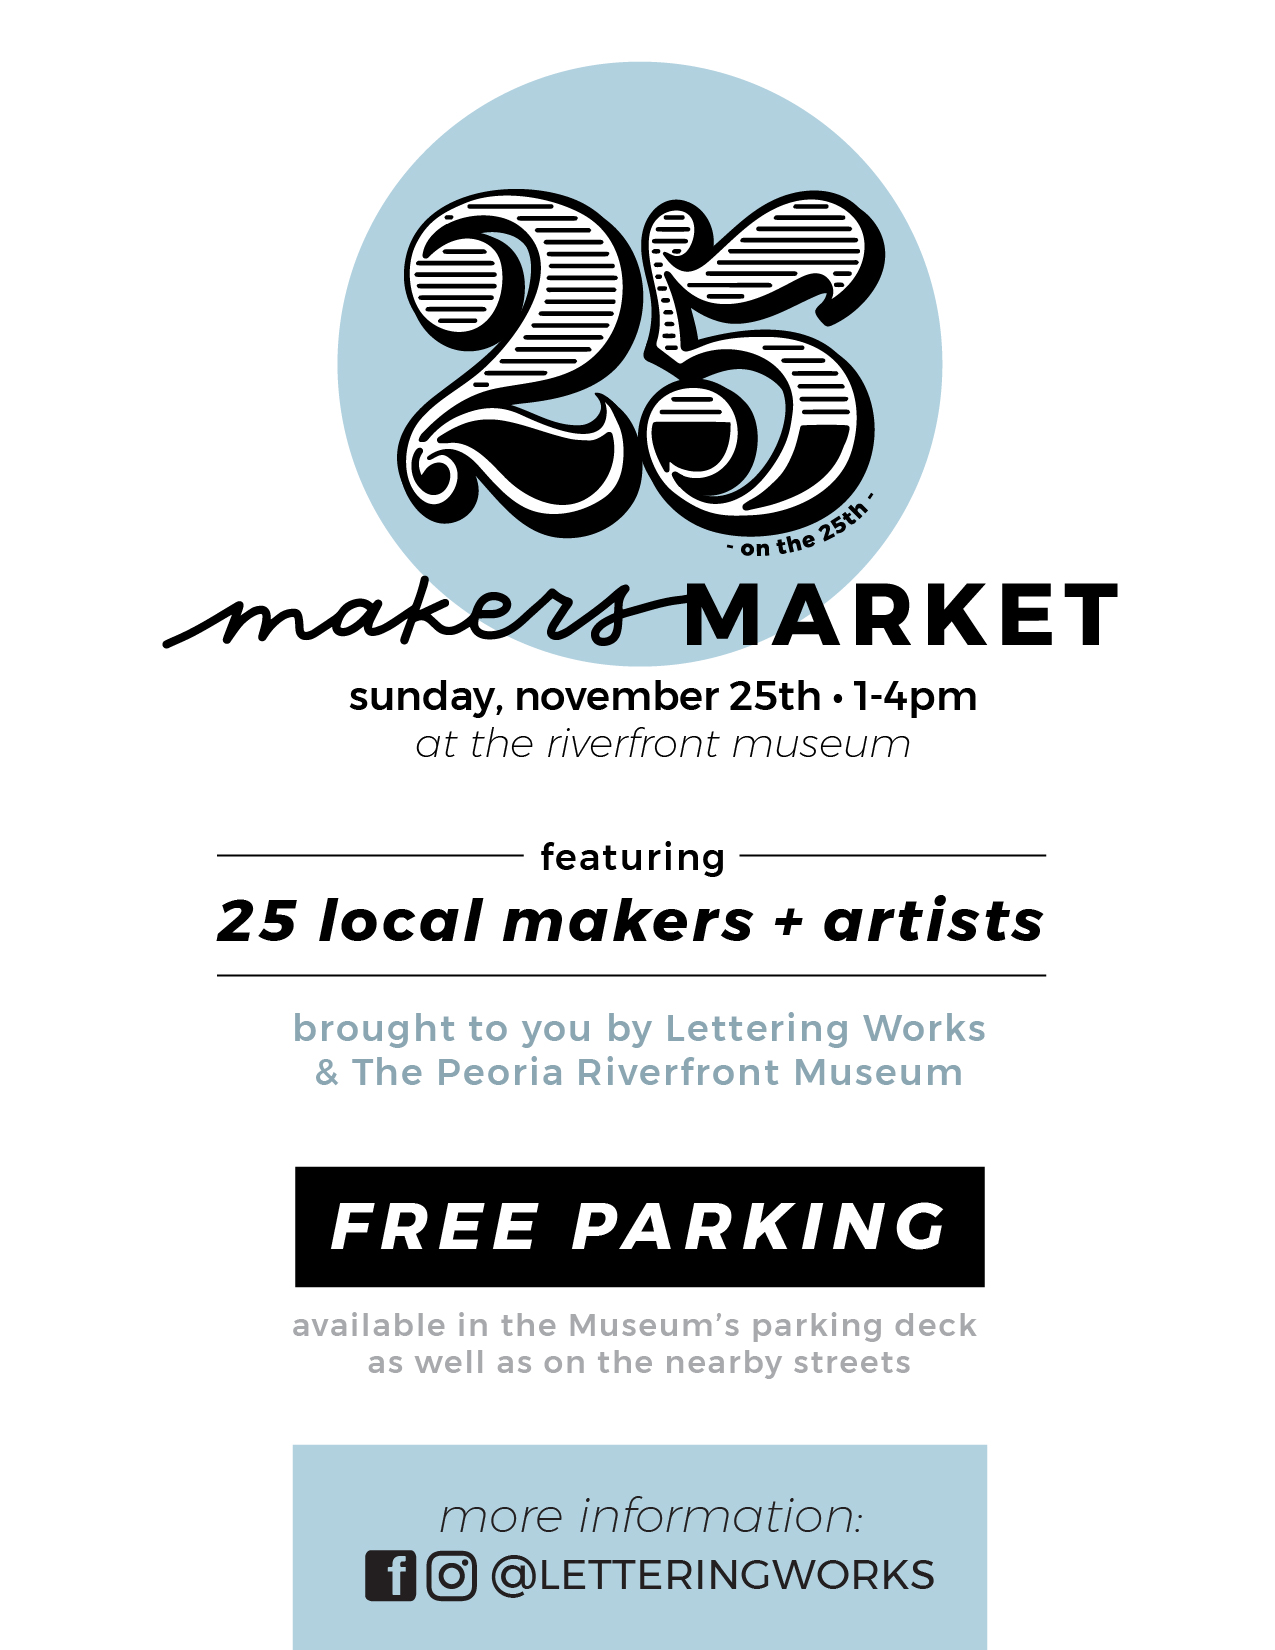 Makers Market Promo 25onthe25th